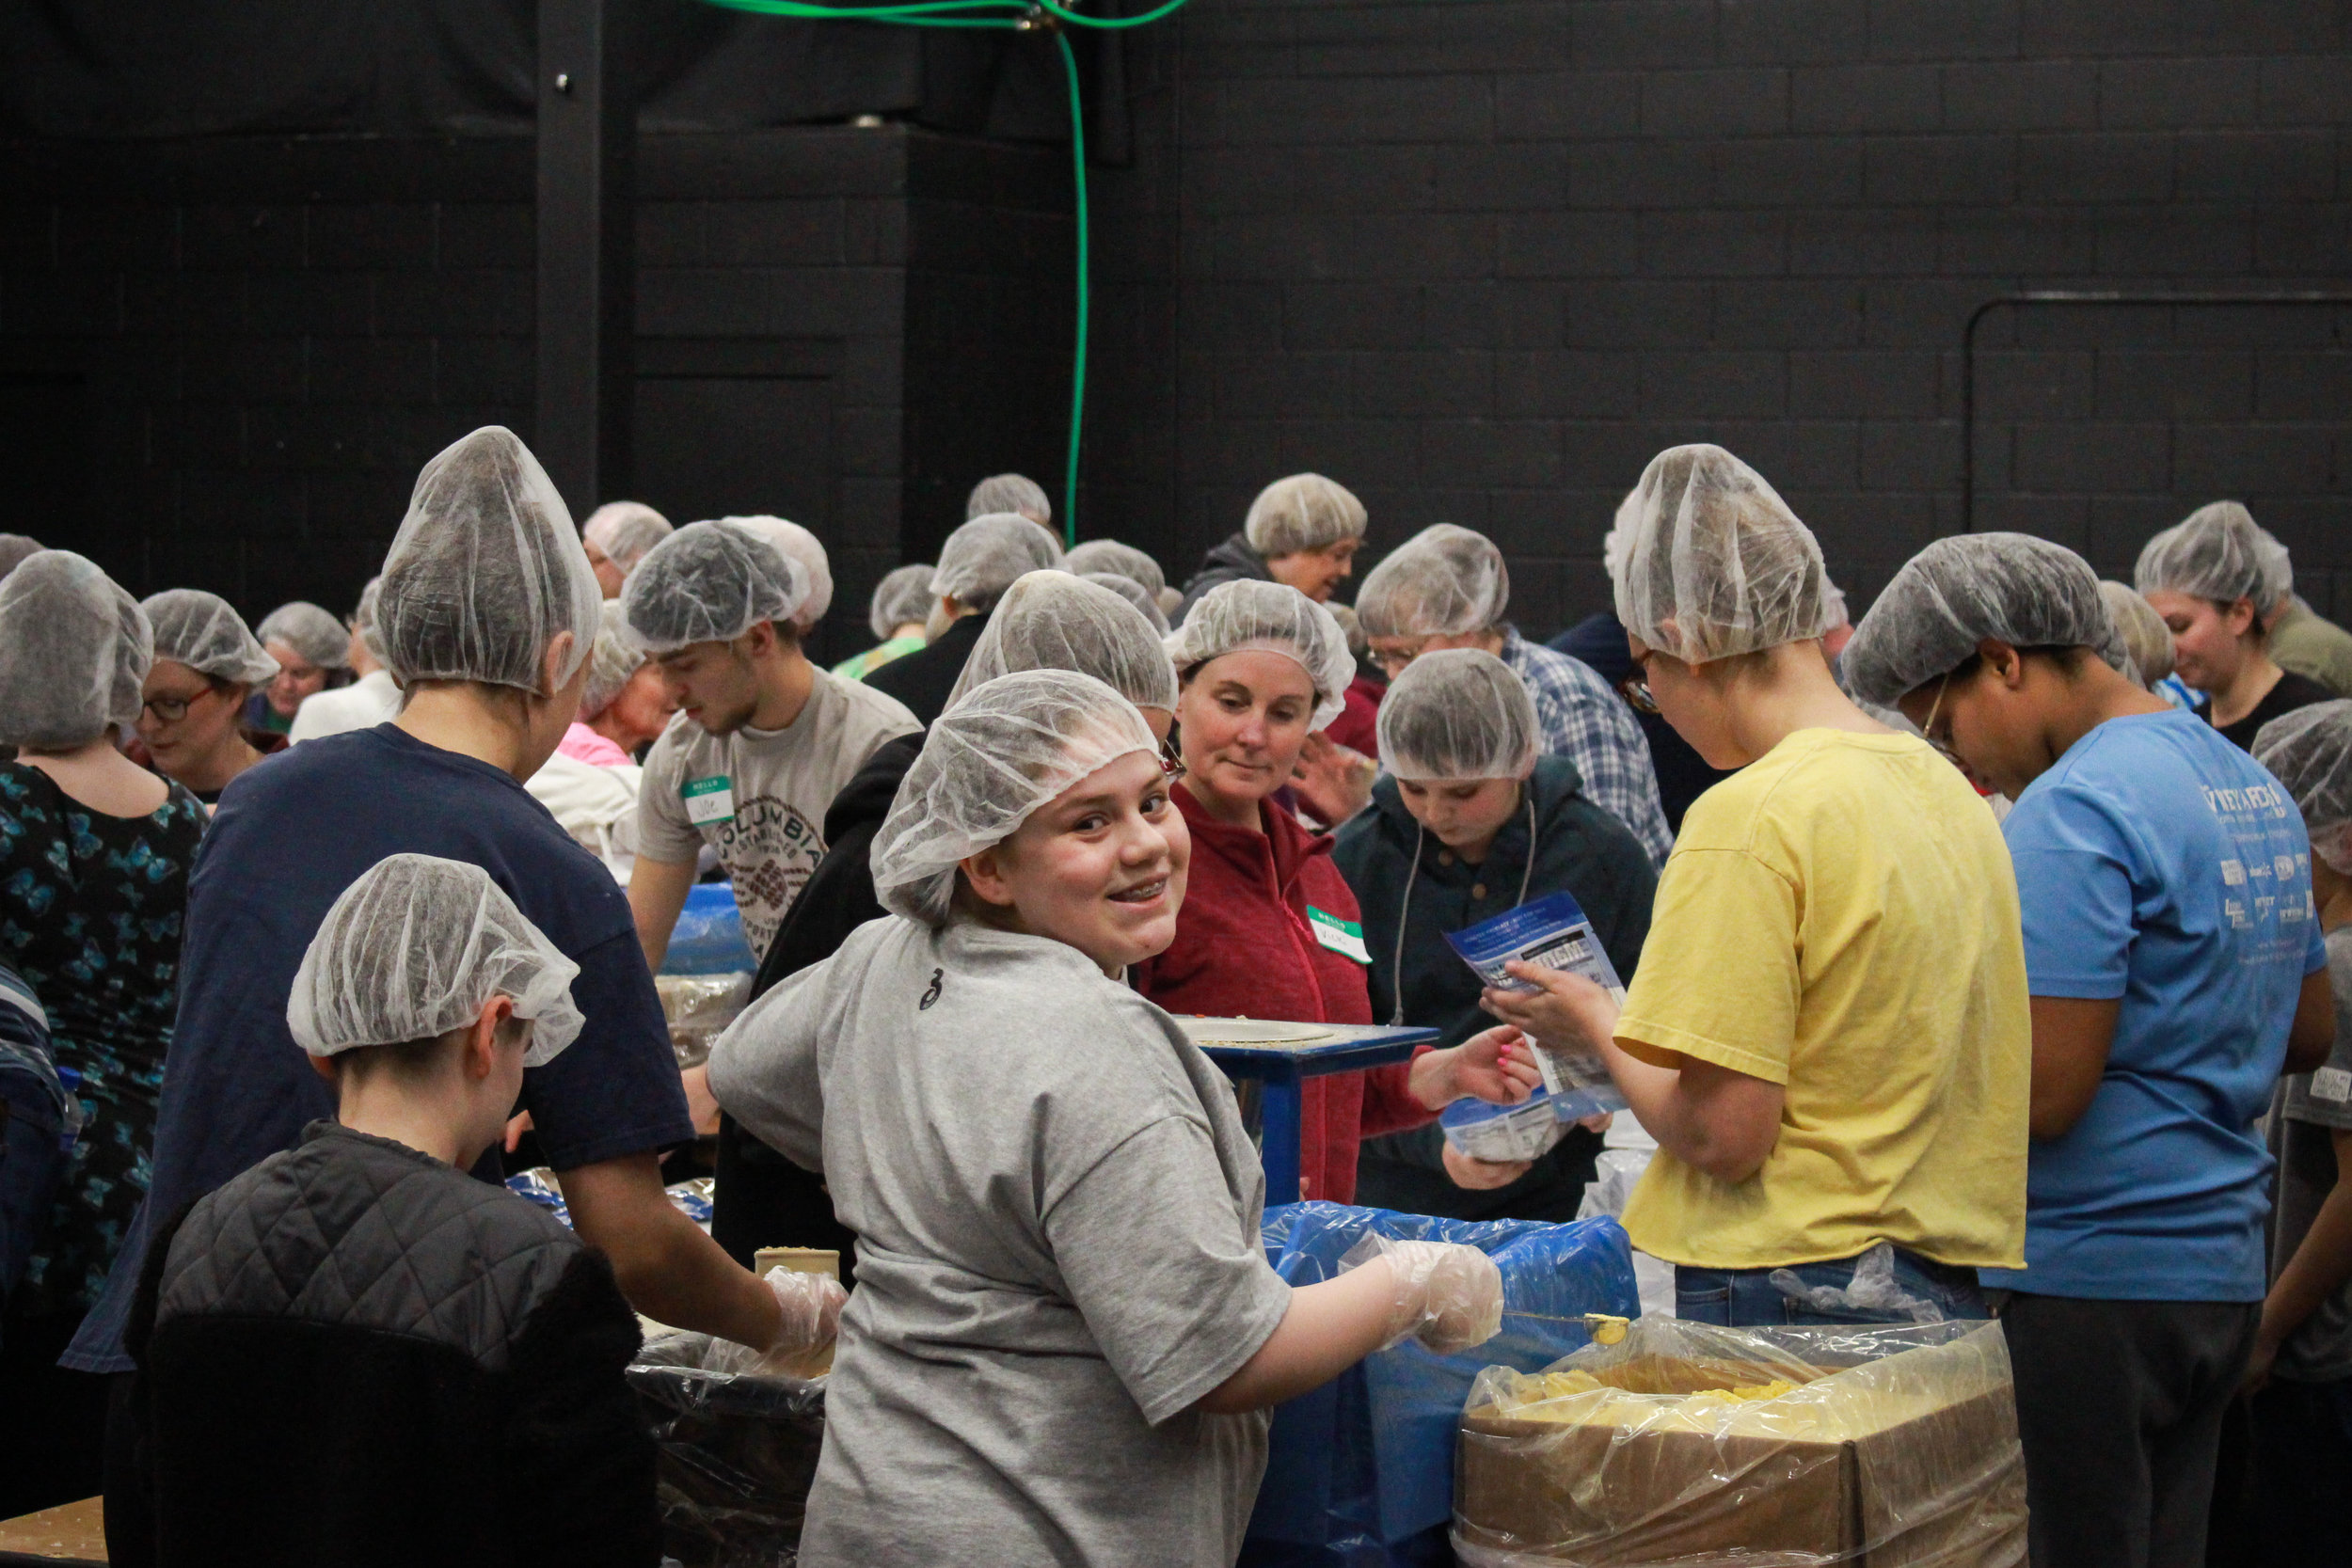 Volunteers at Vineyard Church's meal-packing event